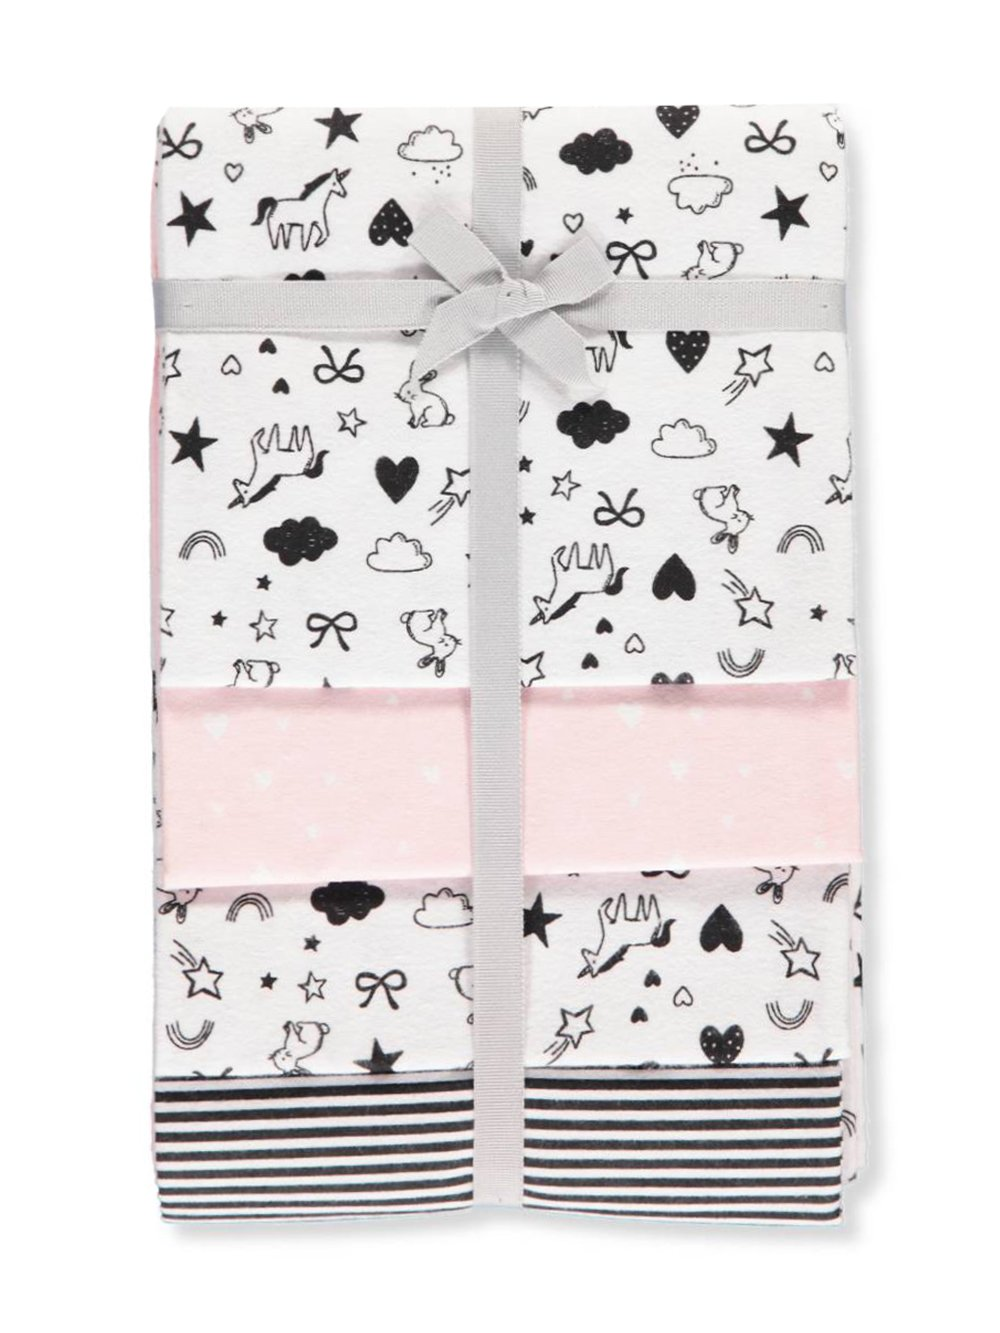 Carters 4-Pack Receiving Blanket Pink and Black Modern Designs Carter' s 99_7.43_20180621_B075HK7ZYG